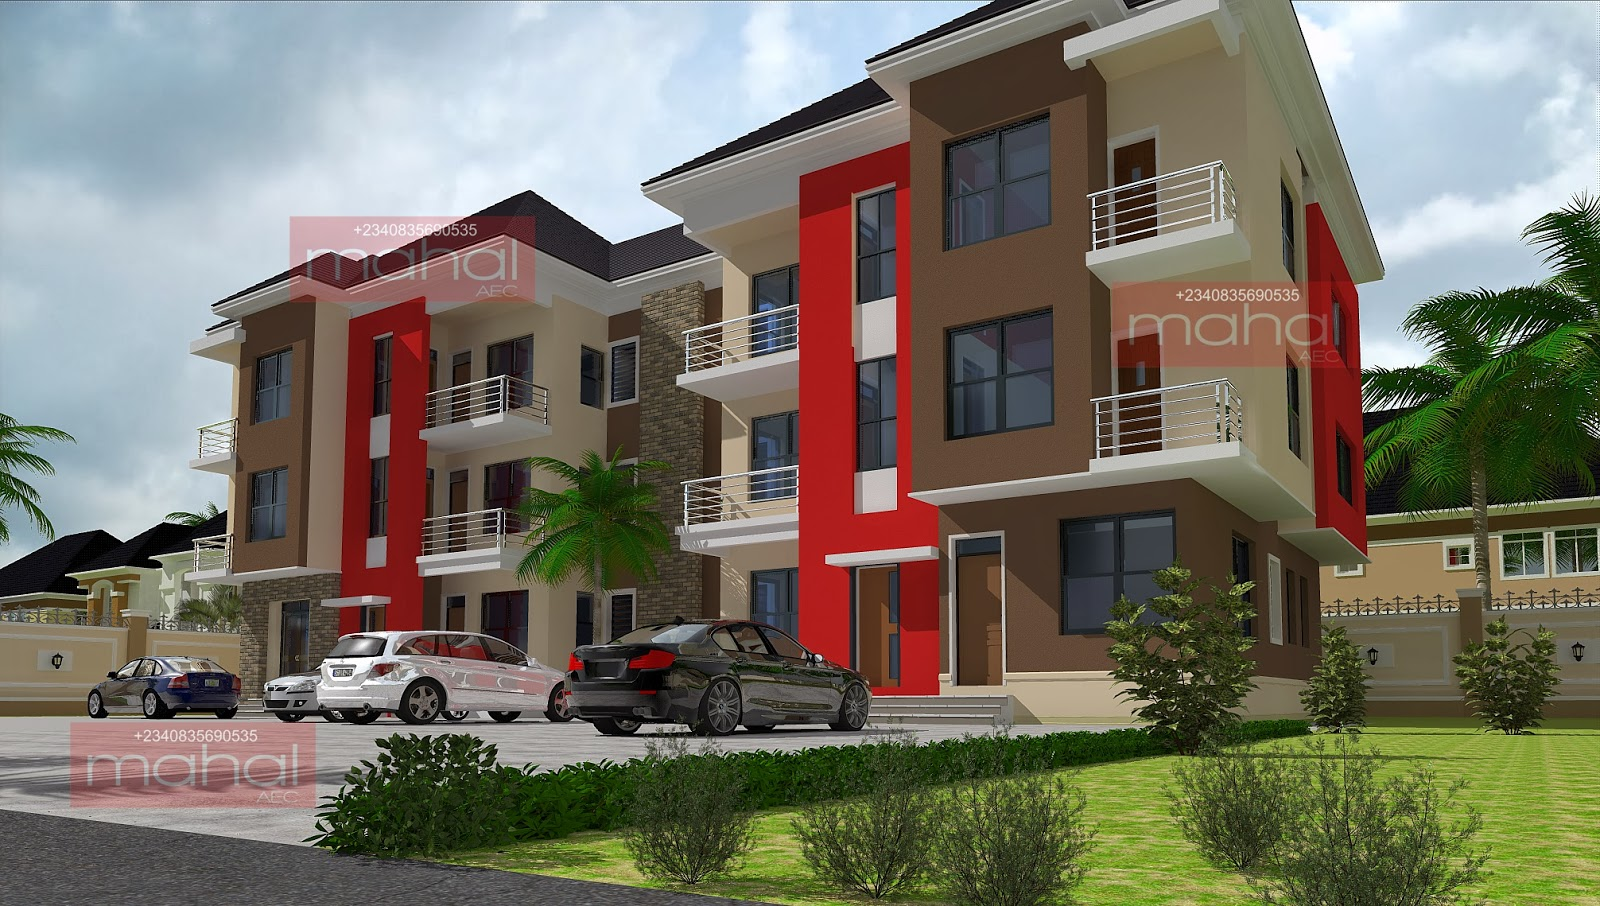 Contemporary Nigerian Residential Architecture Azubie